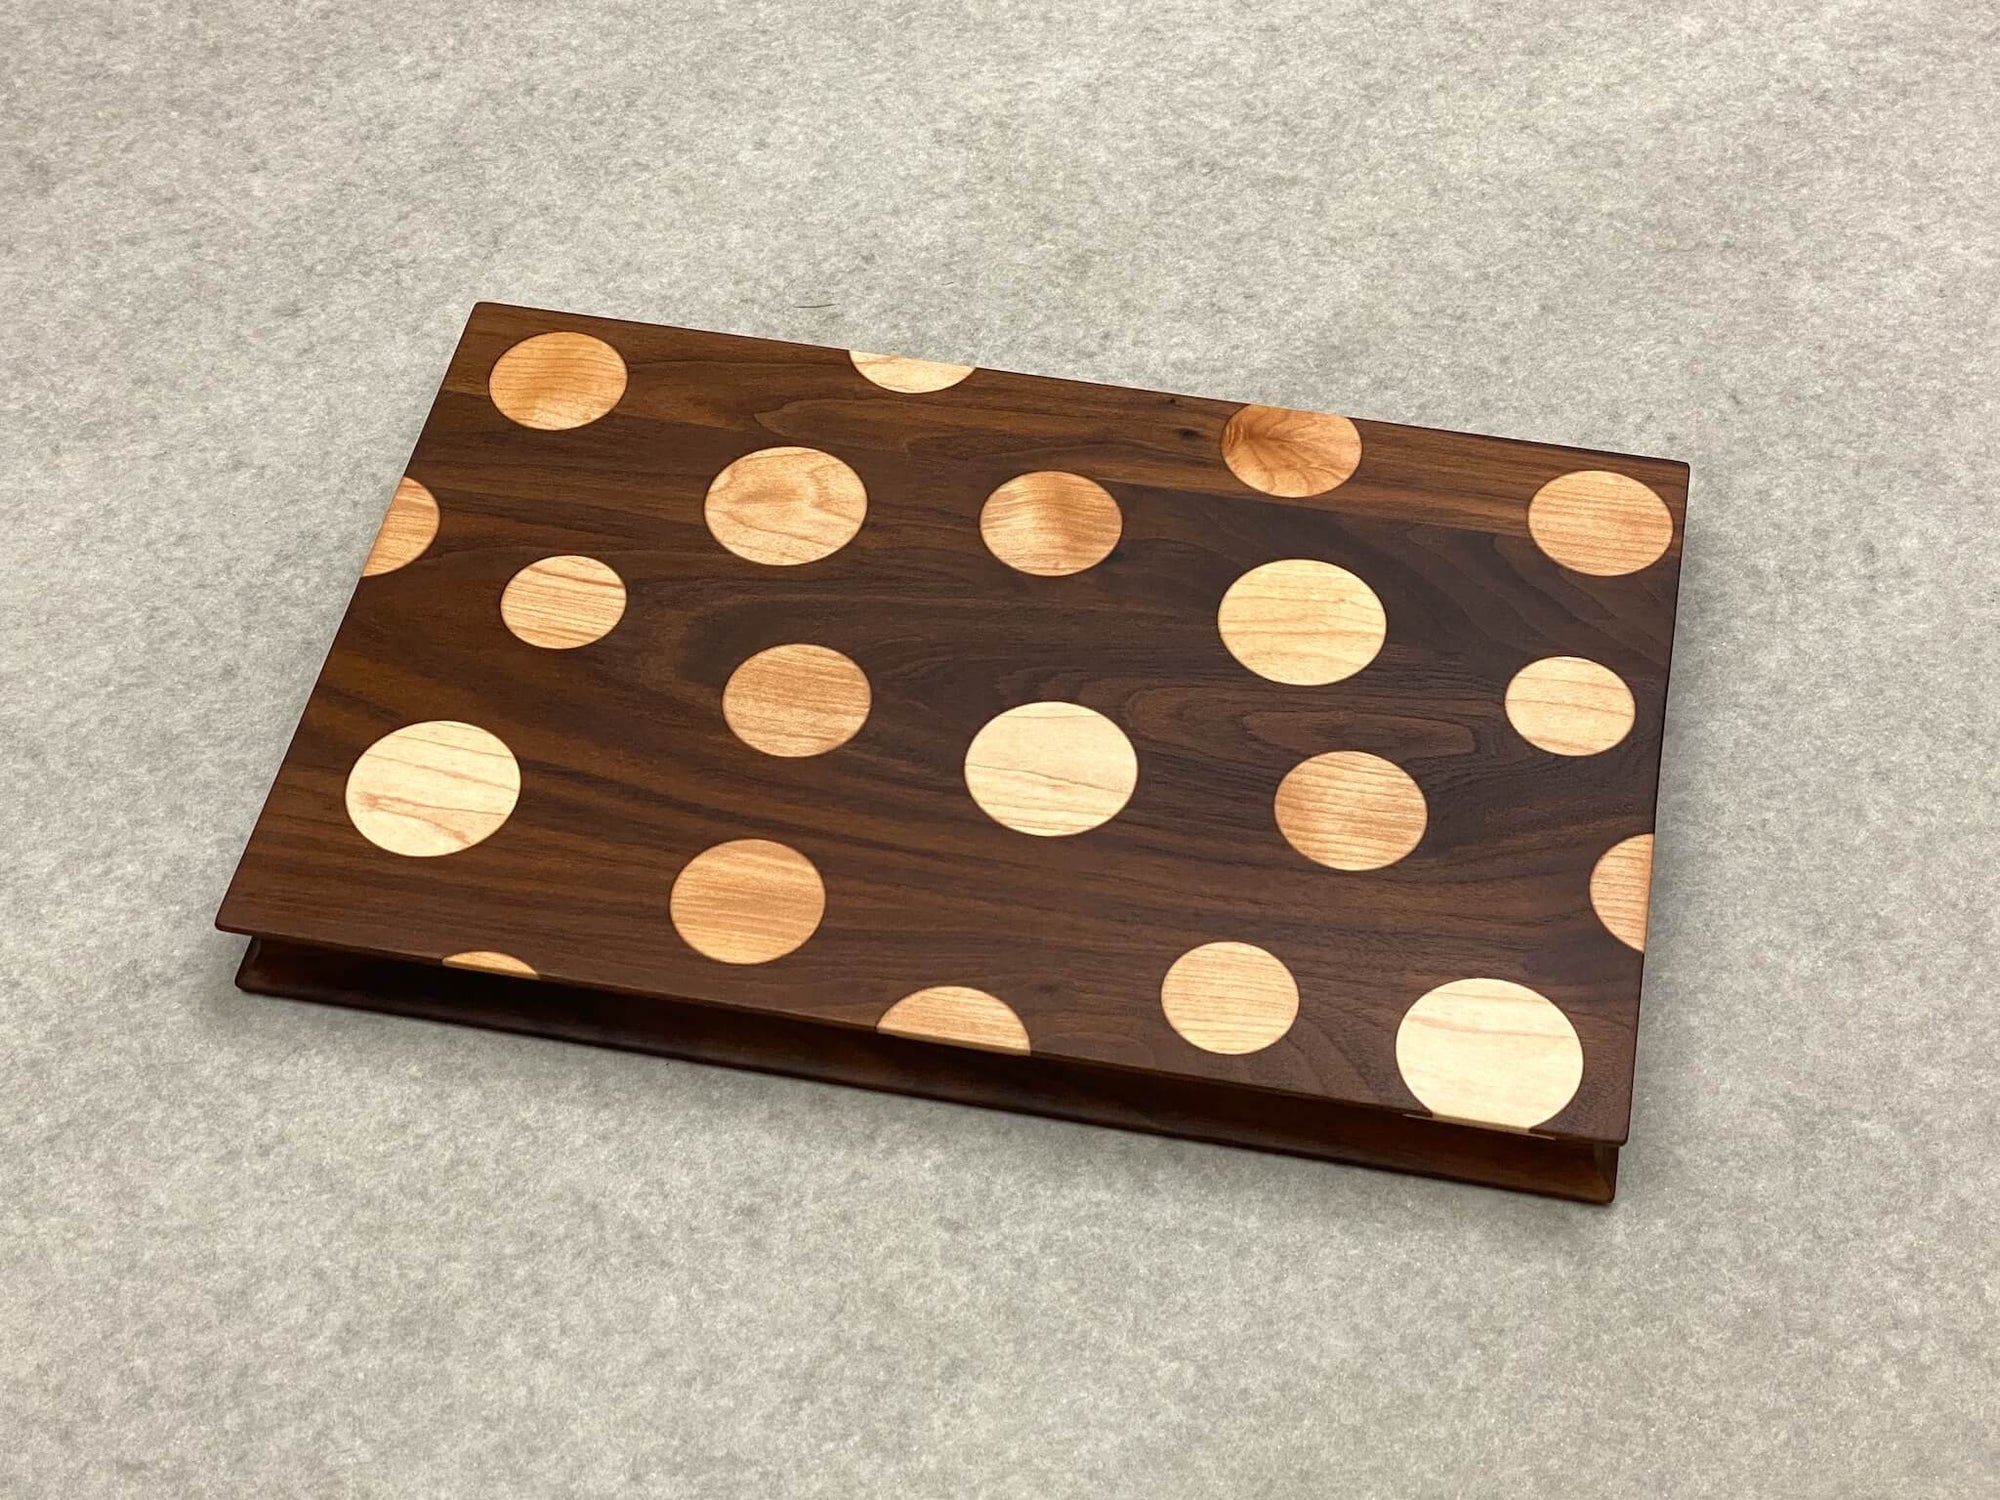 Doubles Rectangle with Polka Dots in Walnut and Maple